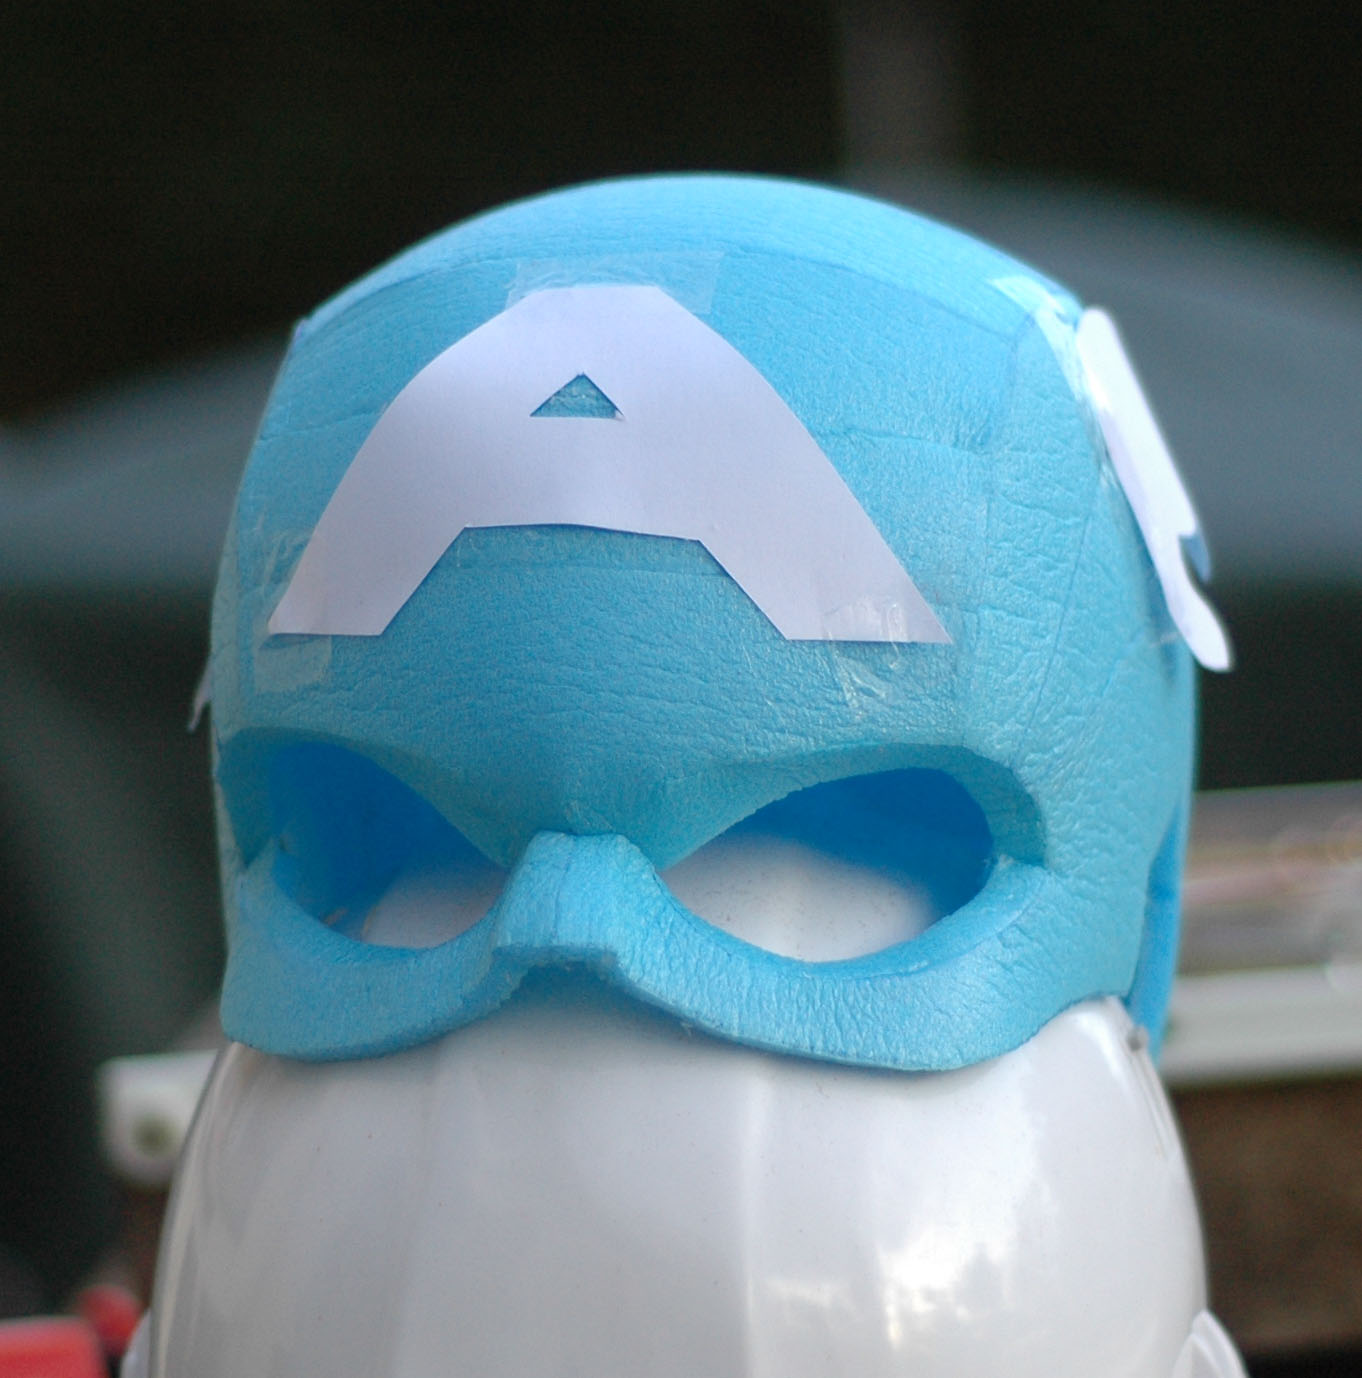 Captain americas helmet speed peping foam file pronofoot35fo Image collections